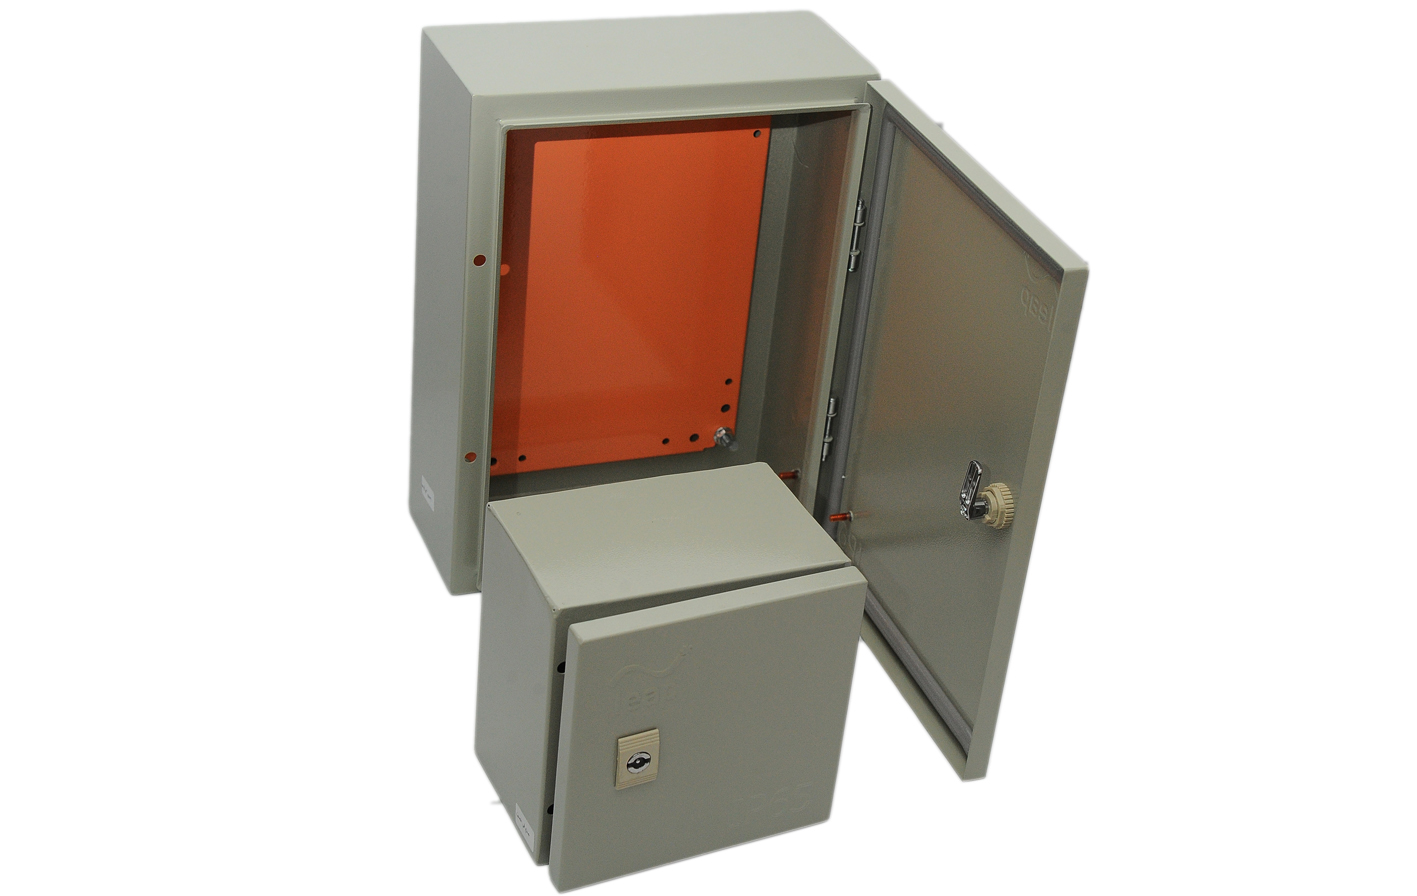 ENCLOSURE BOX